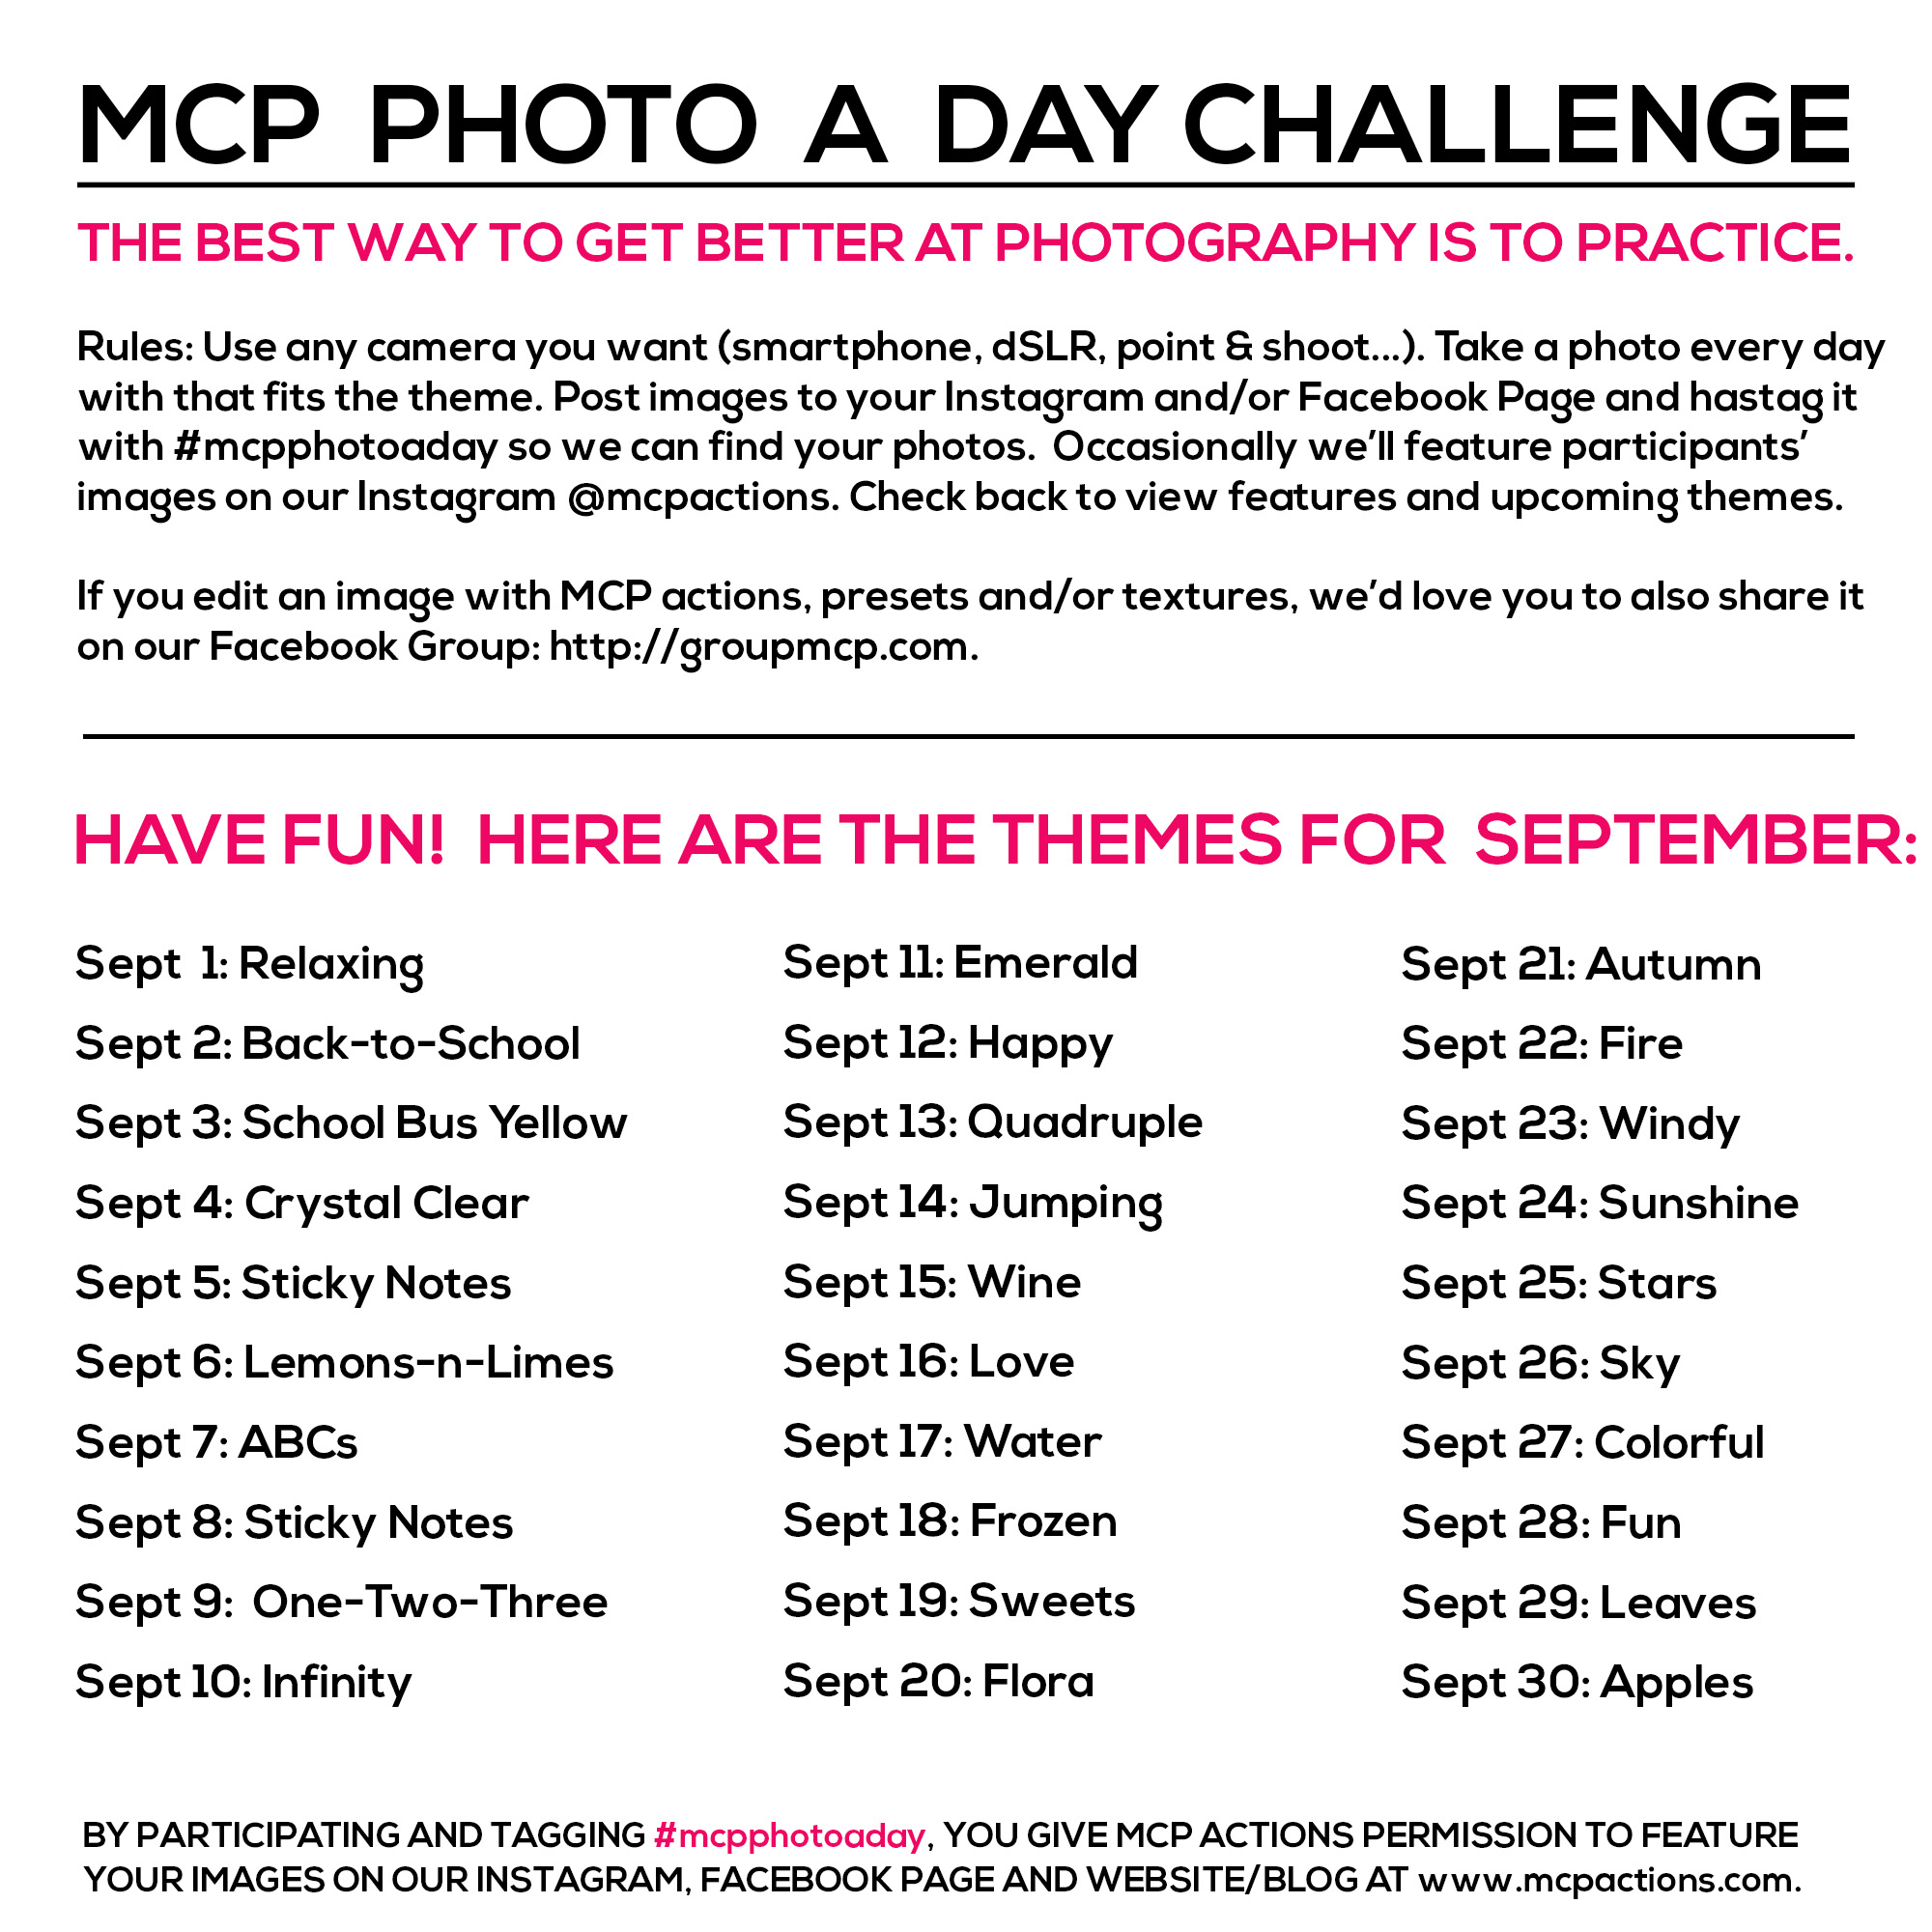 mcpphotoaday-september MCP Photo A Day Challenge: September Themes Activities Announcements Assignments